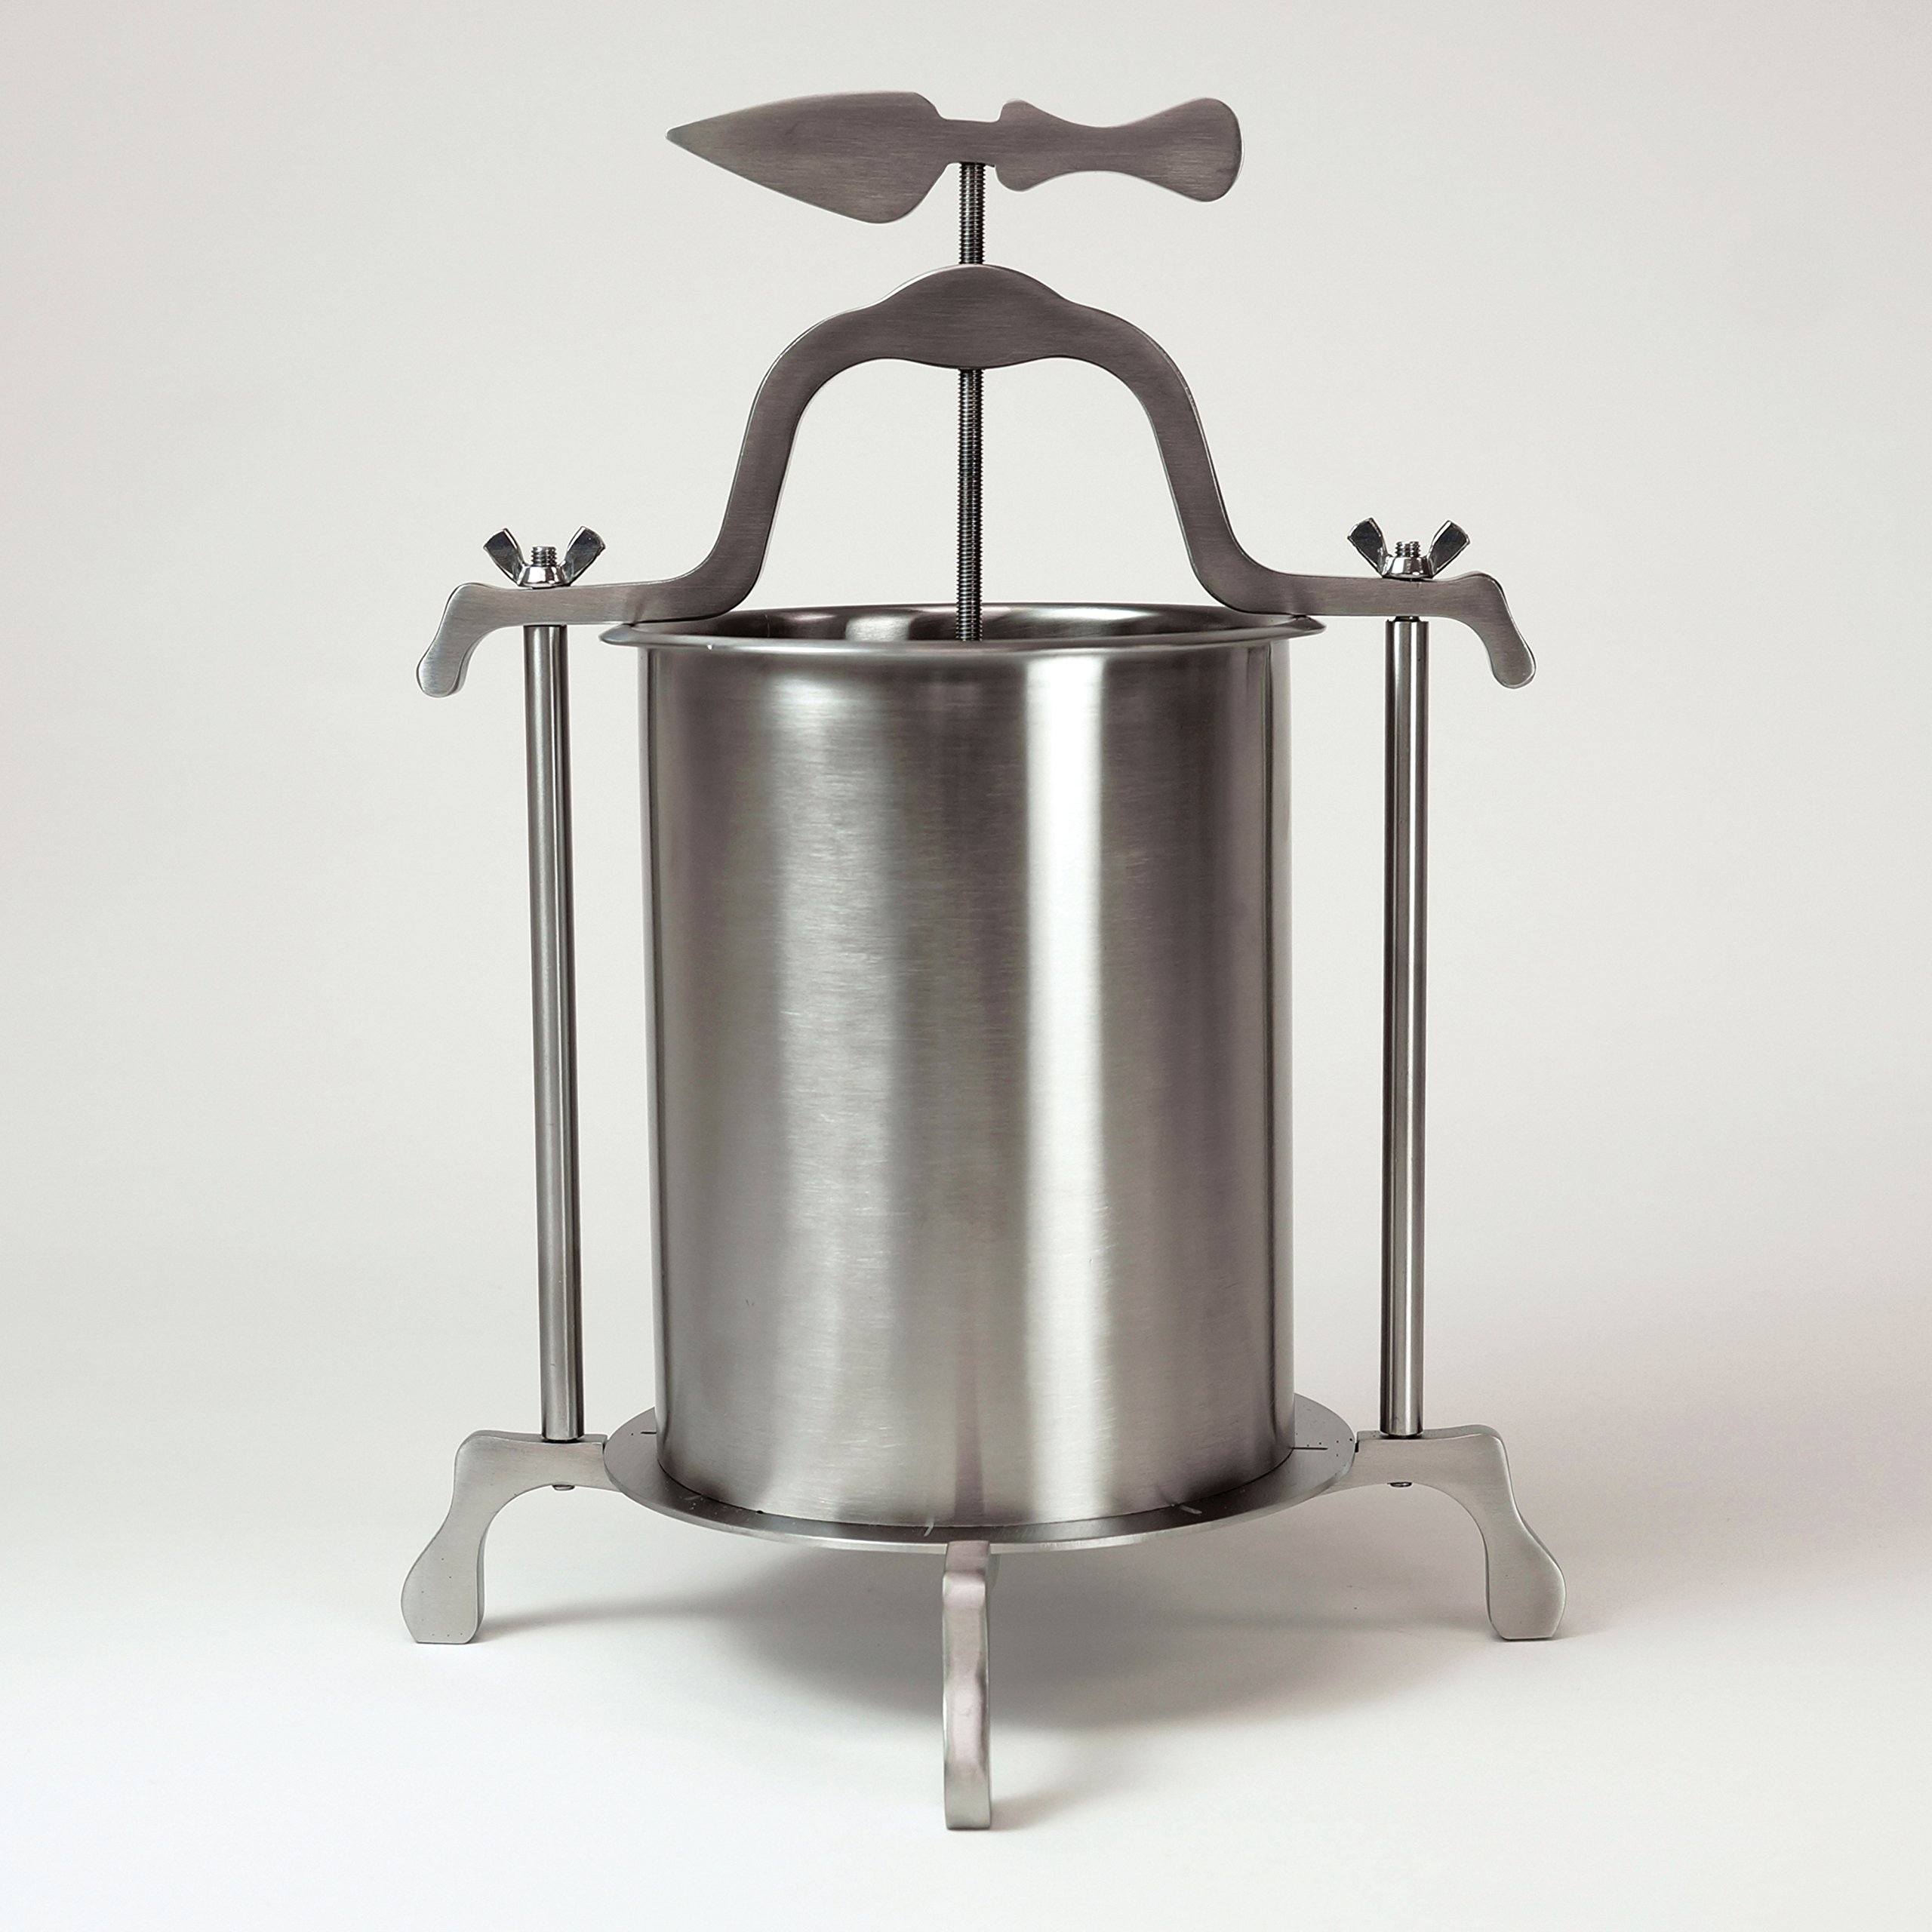 Whey Station Stainless Steel Cheese Press for Home Cheese Making